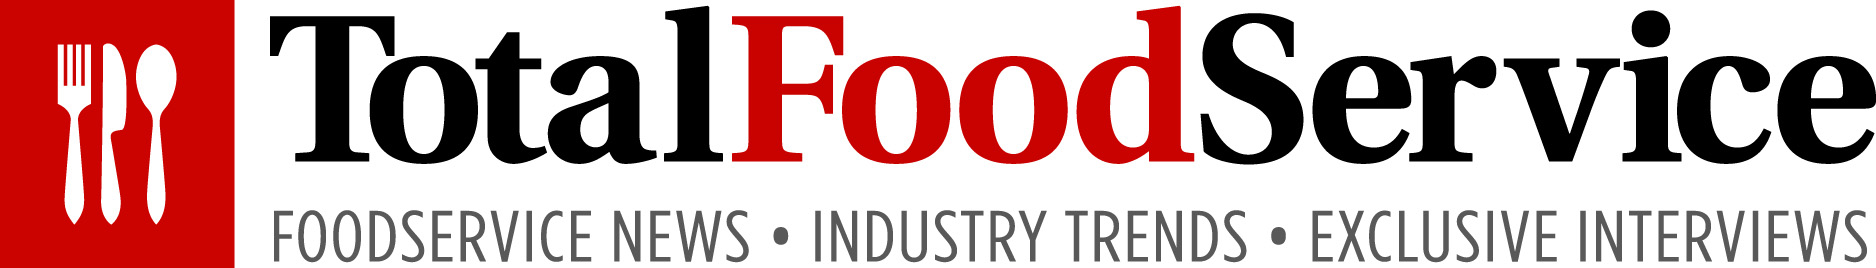 Total Foodservice Magazine